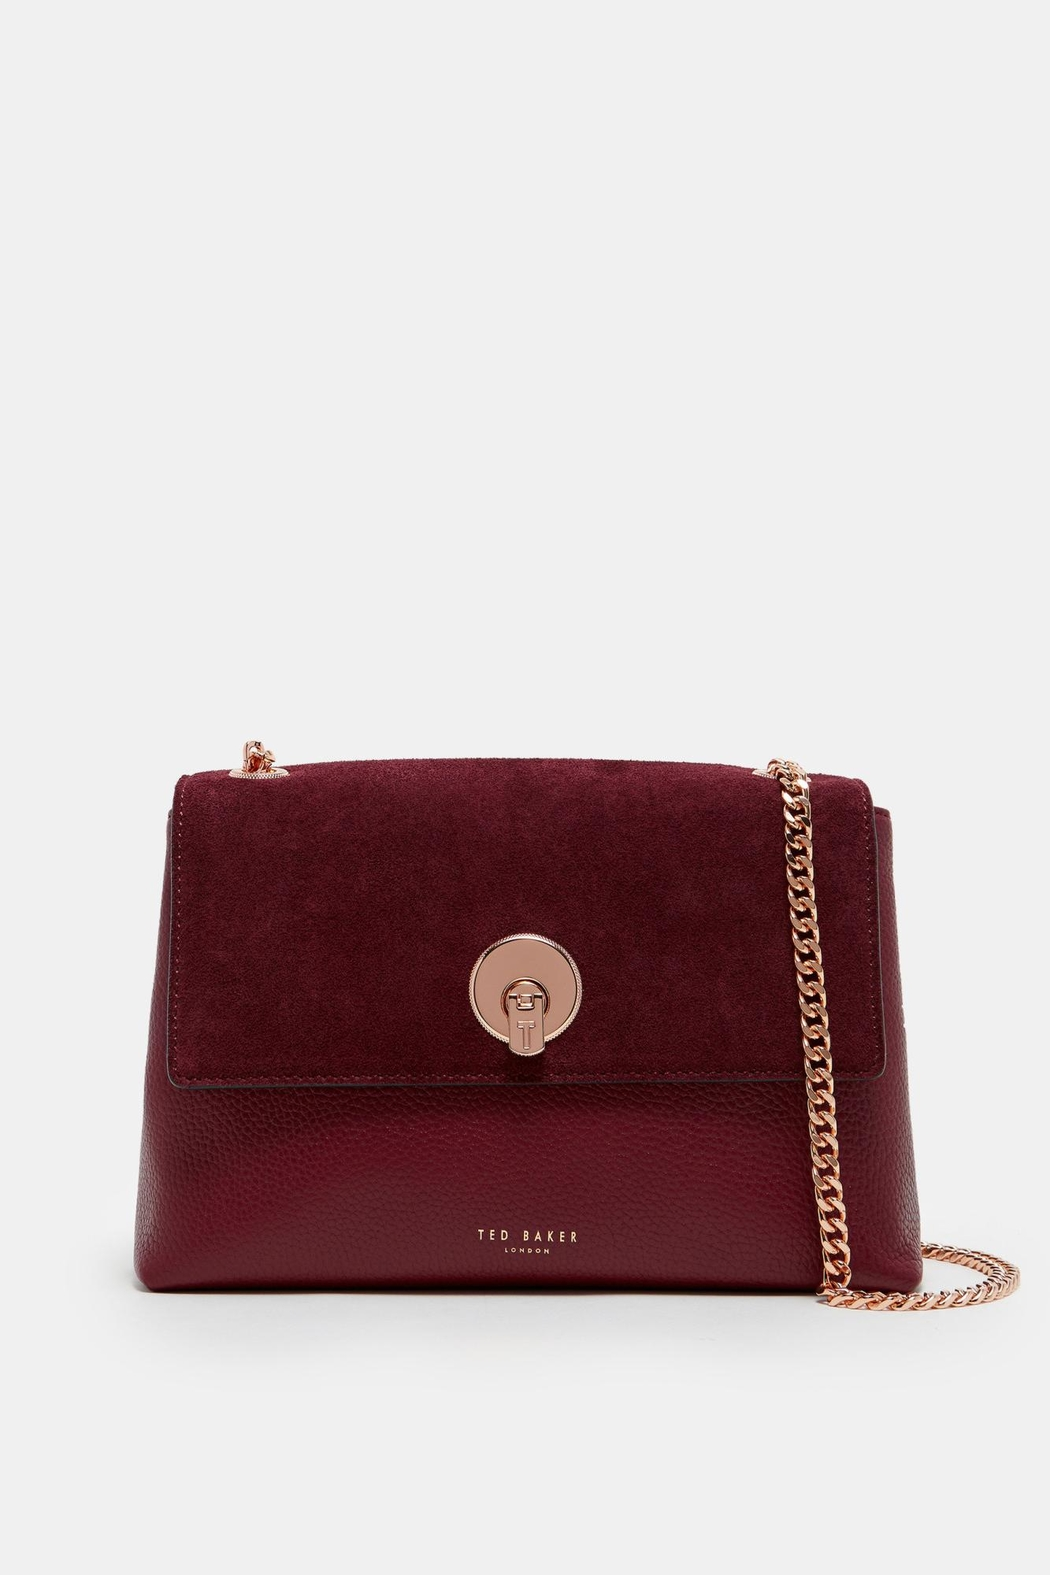 Ted Baker Oxblood Crossbody Bag - Front Cropped Image